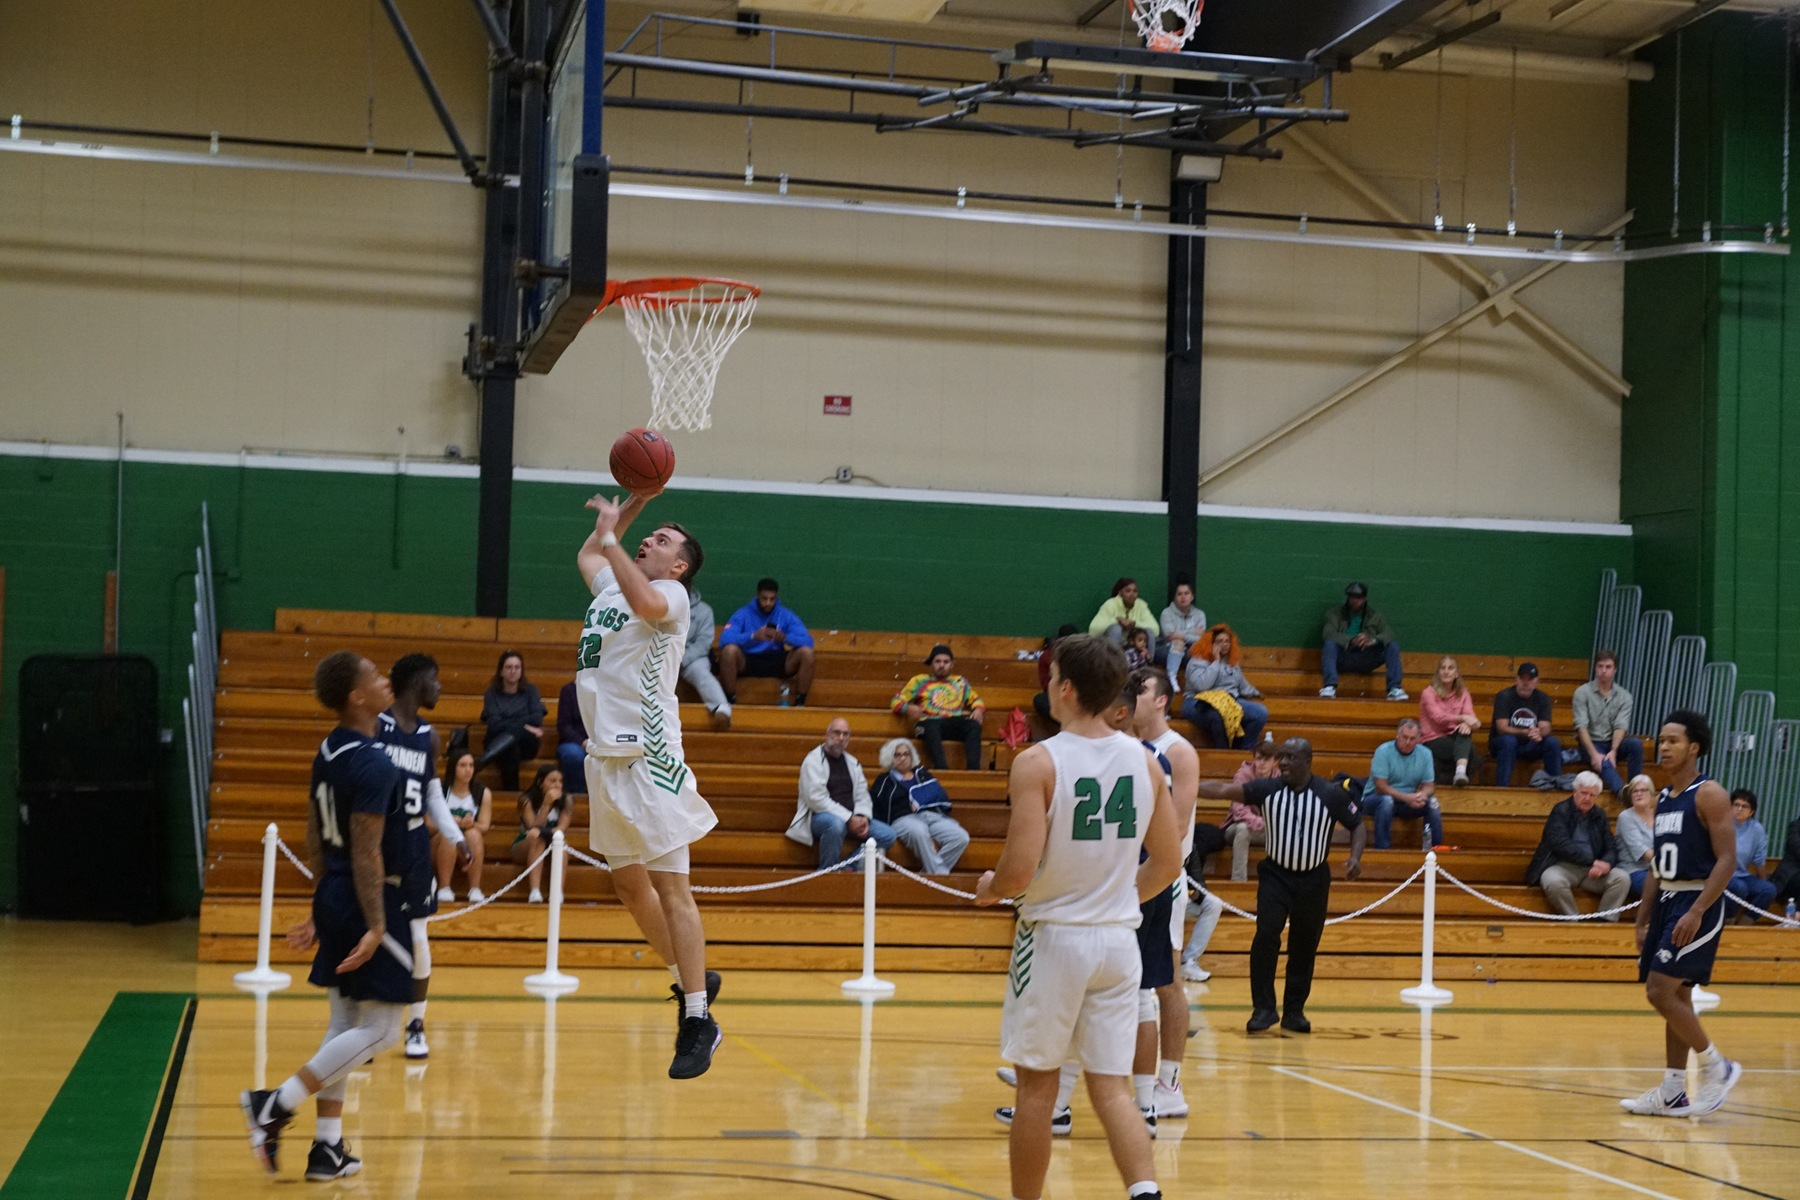 Men's Basketball's Win Streak Capped at 3 in 99-90 Loss at Union CC